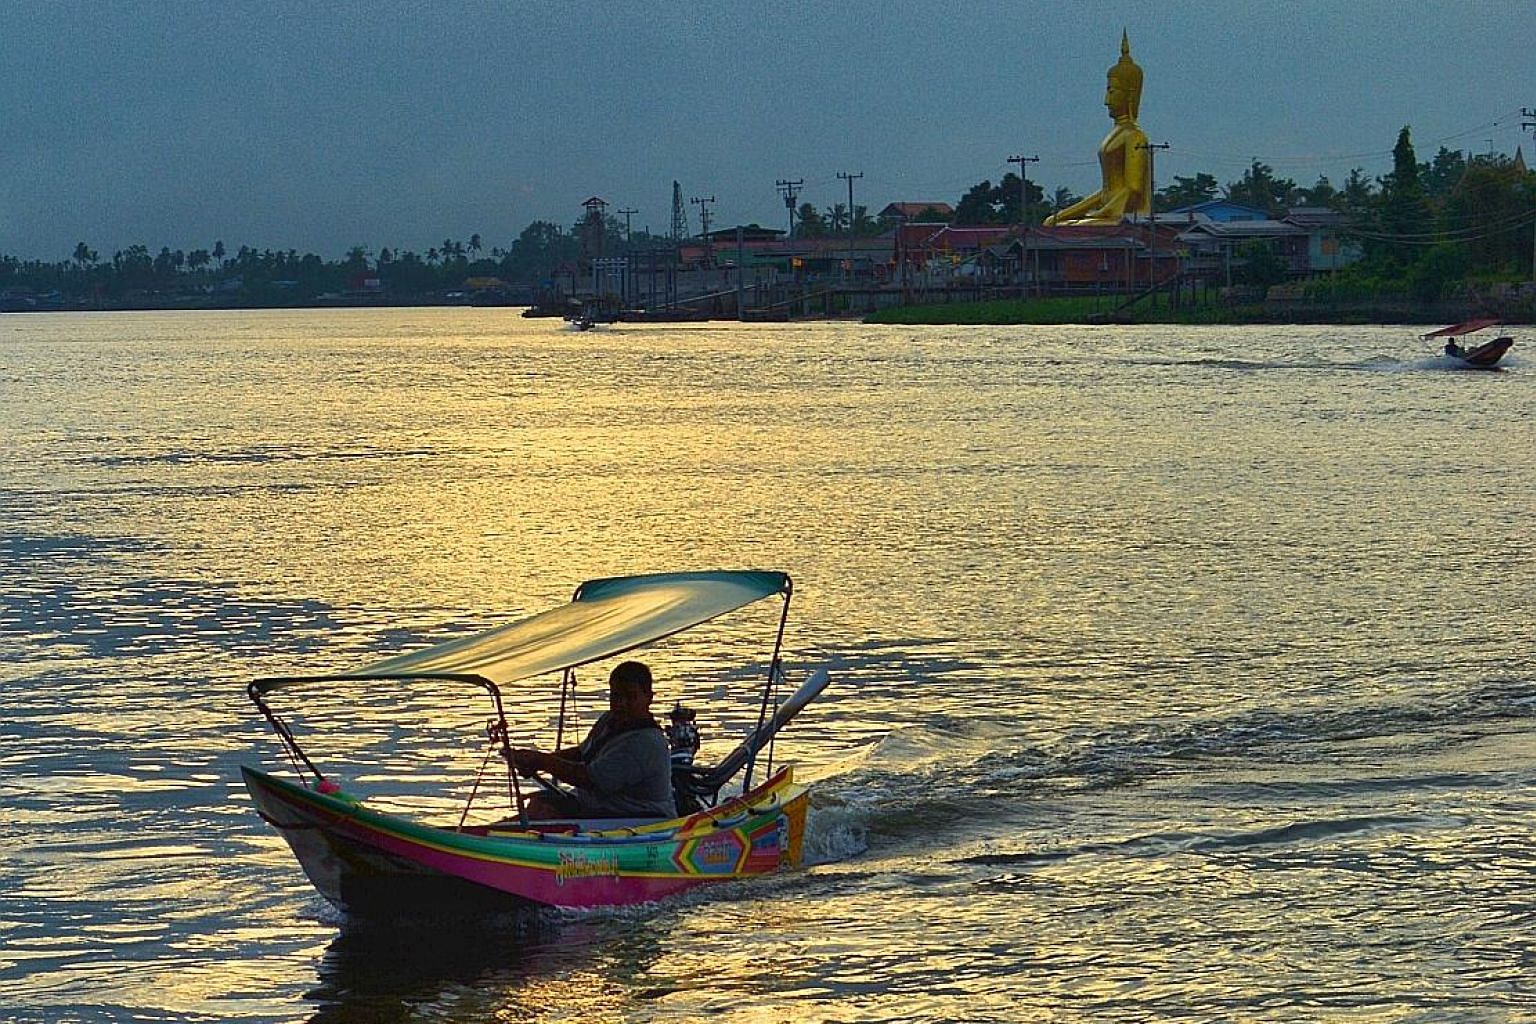 At Bang Krachao, tourists can explore its villages, temples and markets. Go on a boat ride and visit the 4 sq km island of Ko Kret, which looks and feels as if it has been transplanted from the remote Thai countryside. Zoom offers unobstructed views